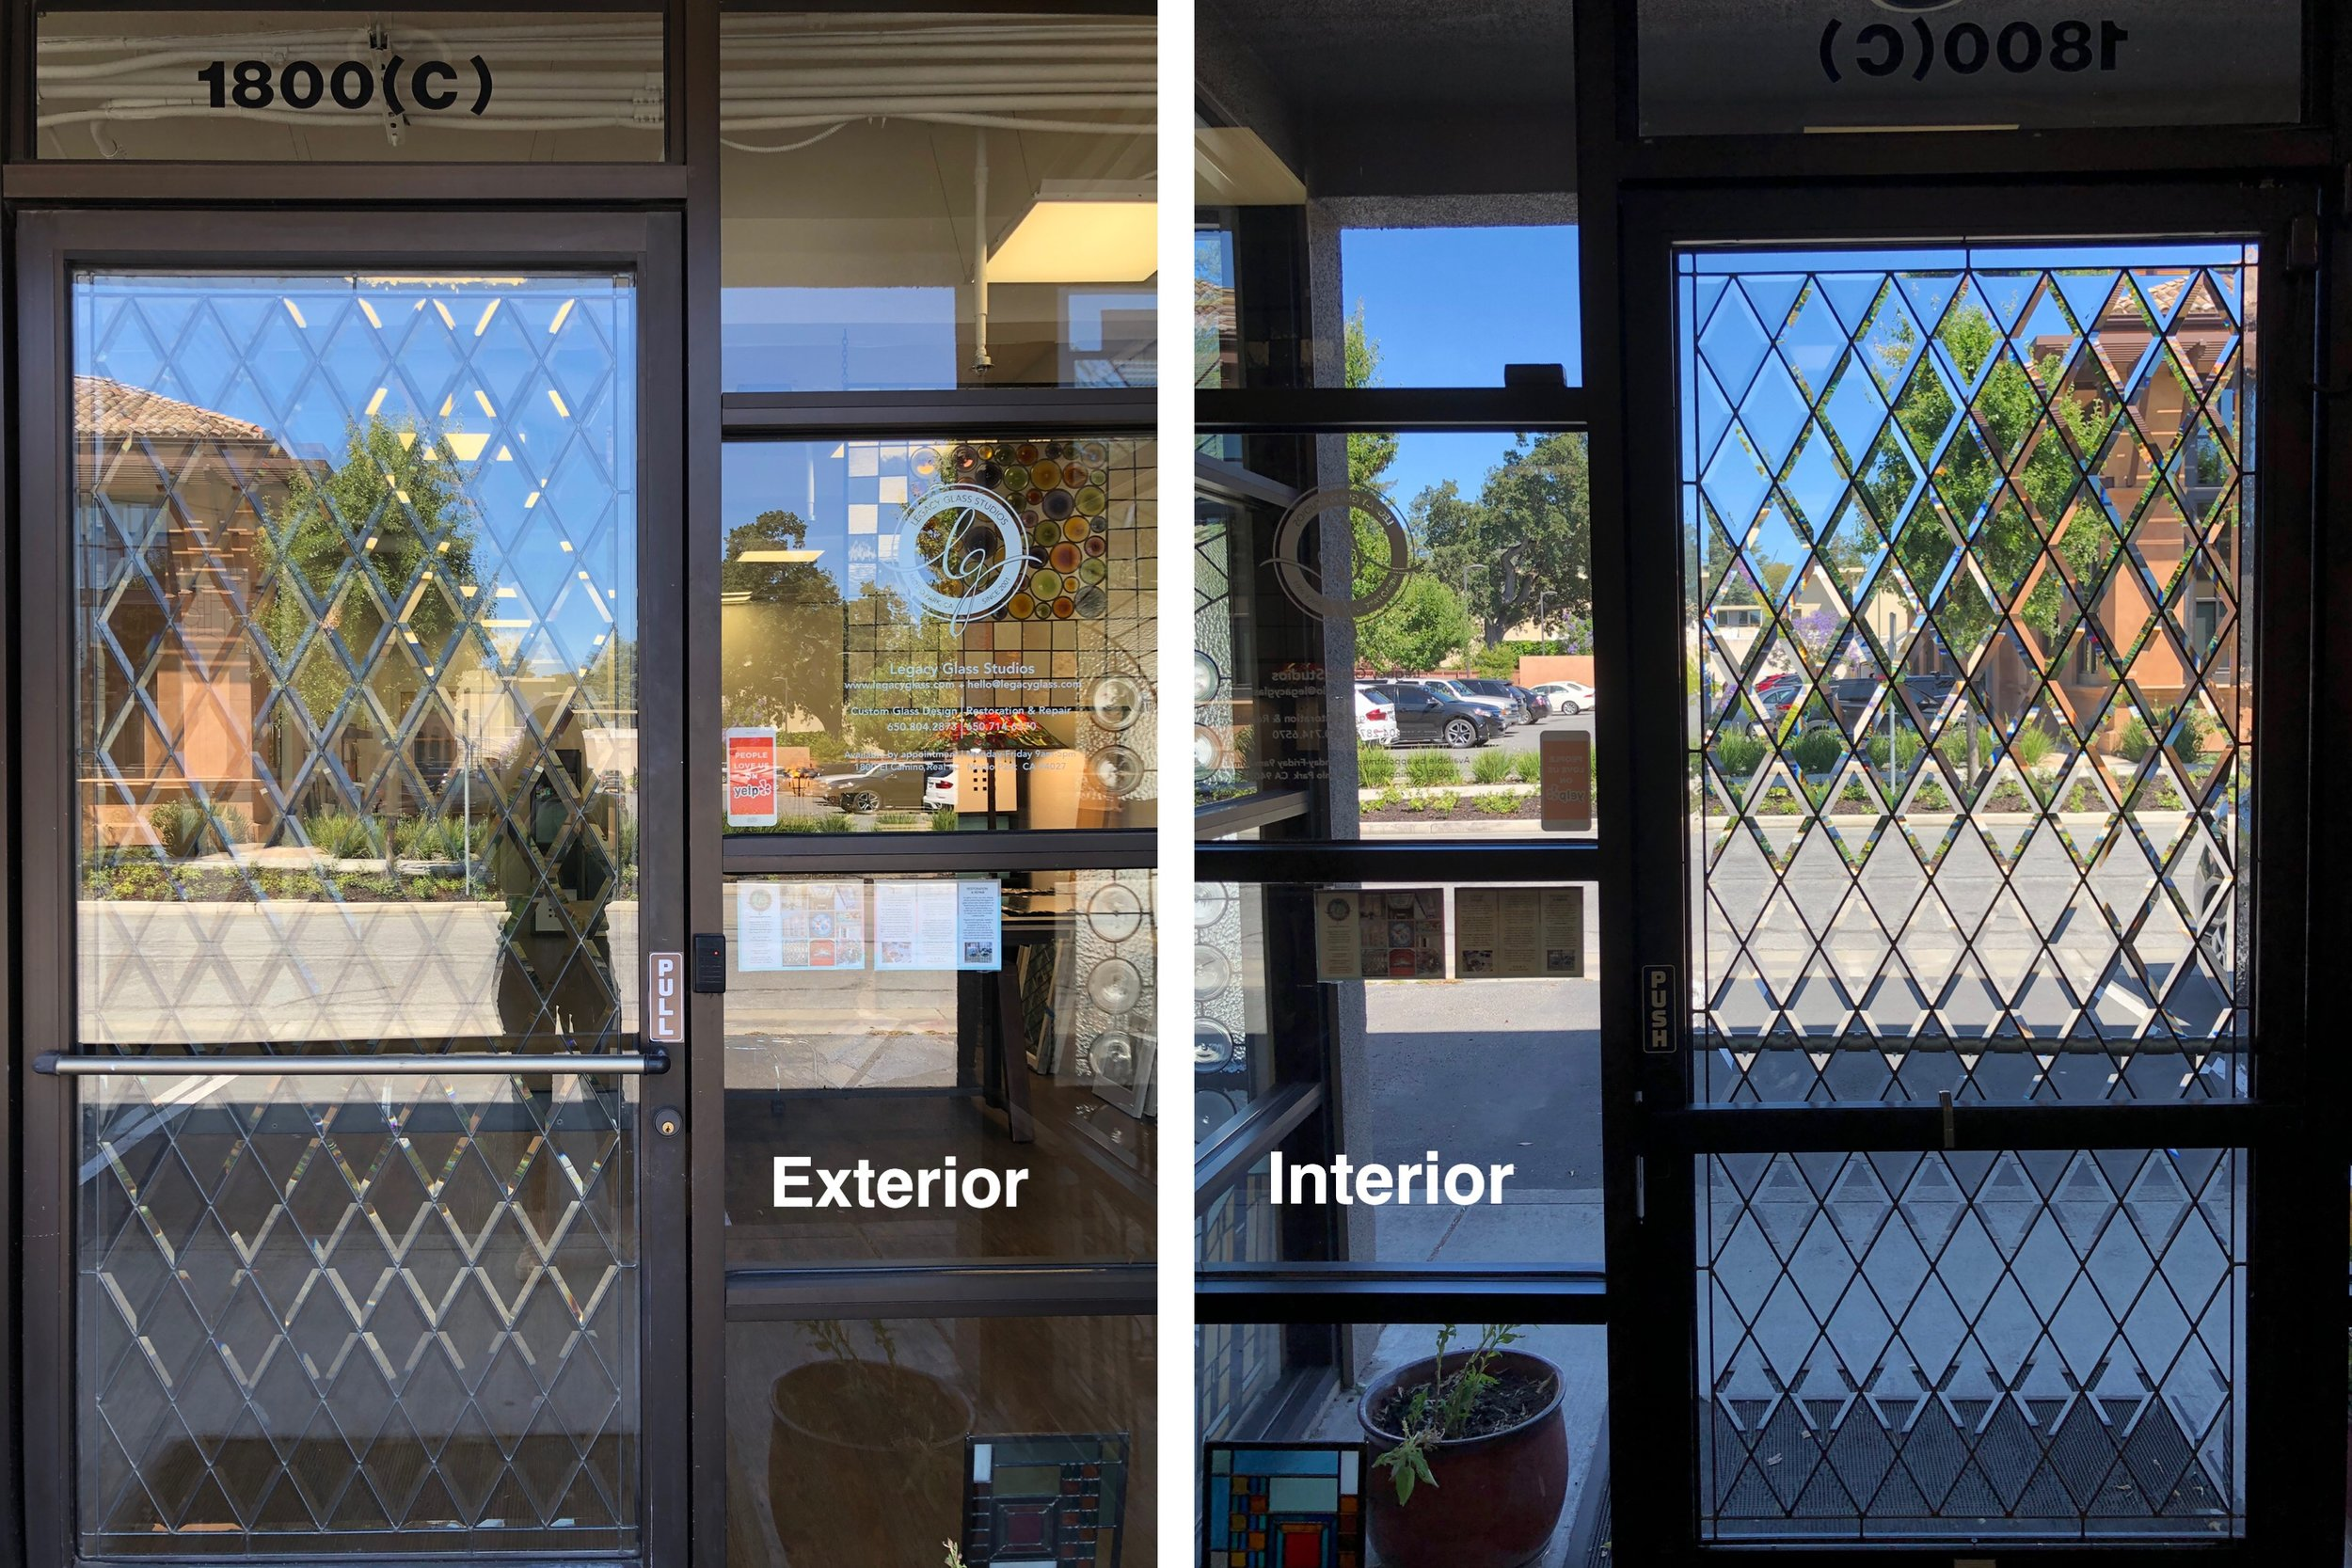 Our office's front door is a great example of how insulated glass can look from the exterior.